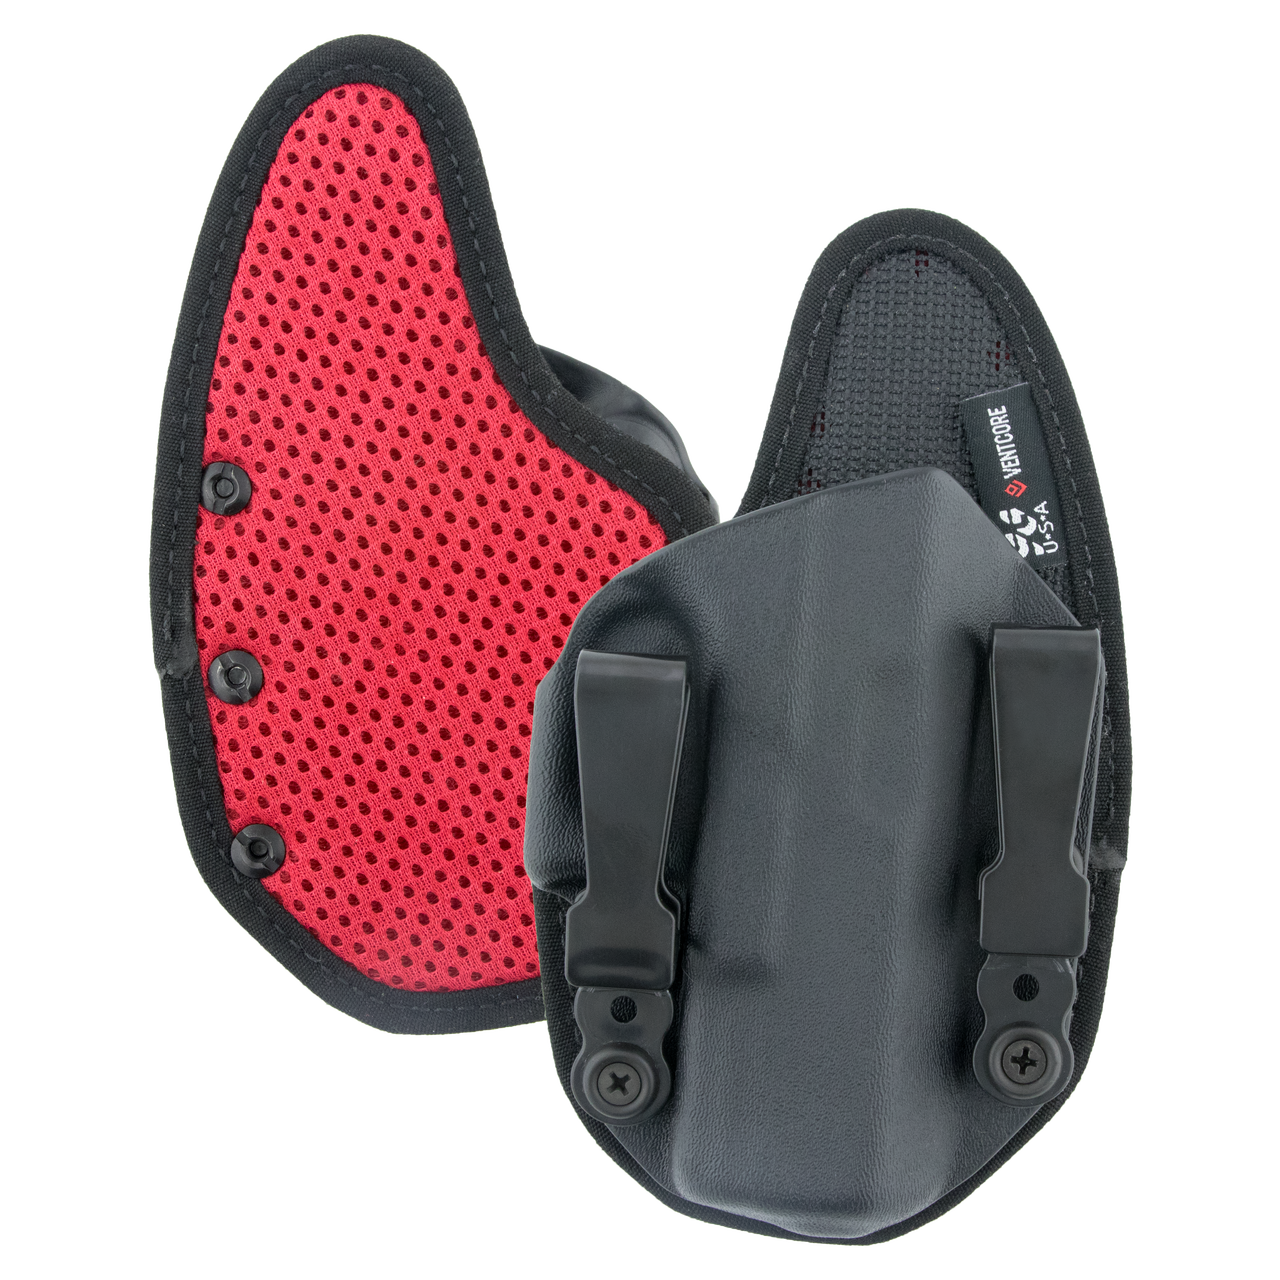 StealthGear Ventcore AIWB Appendix Holster for Glock 26 with Streamlight TLR-6 Weapon Light Tactical Gear Australia Supplier Distributor Dealer